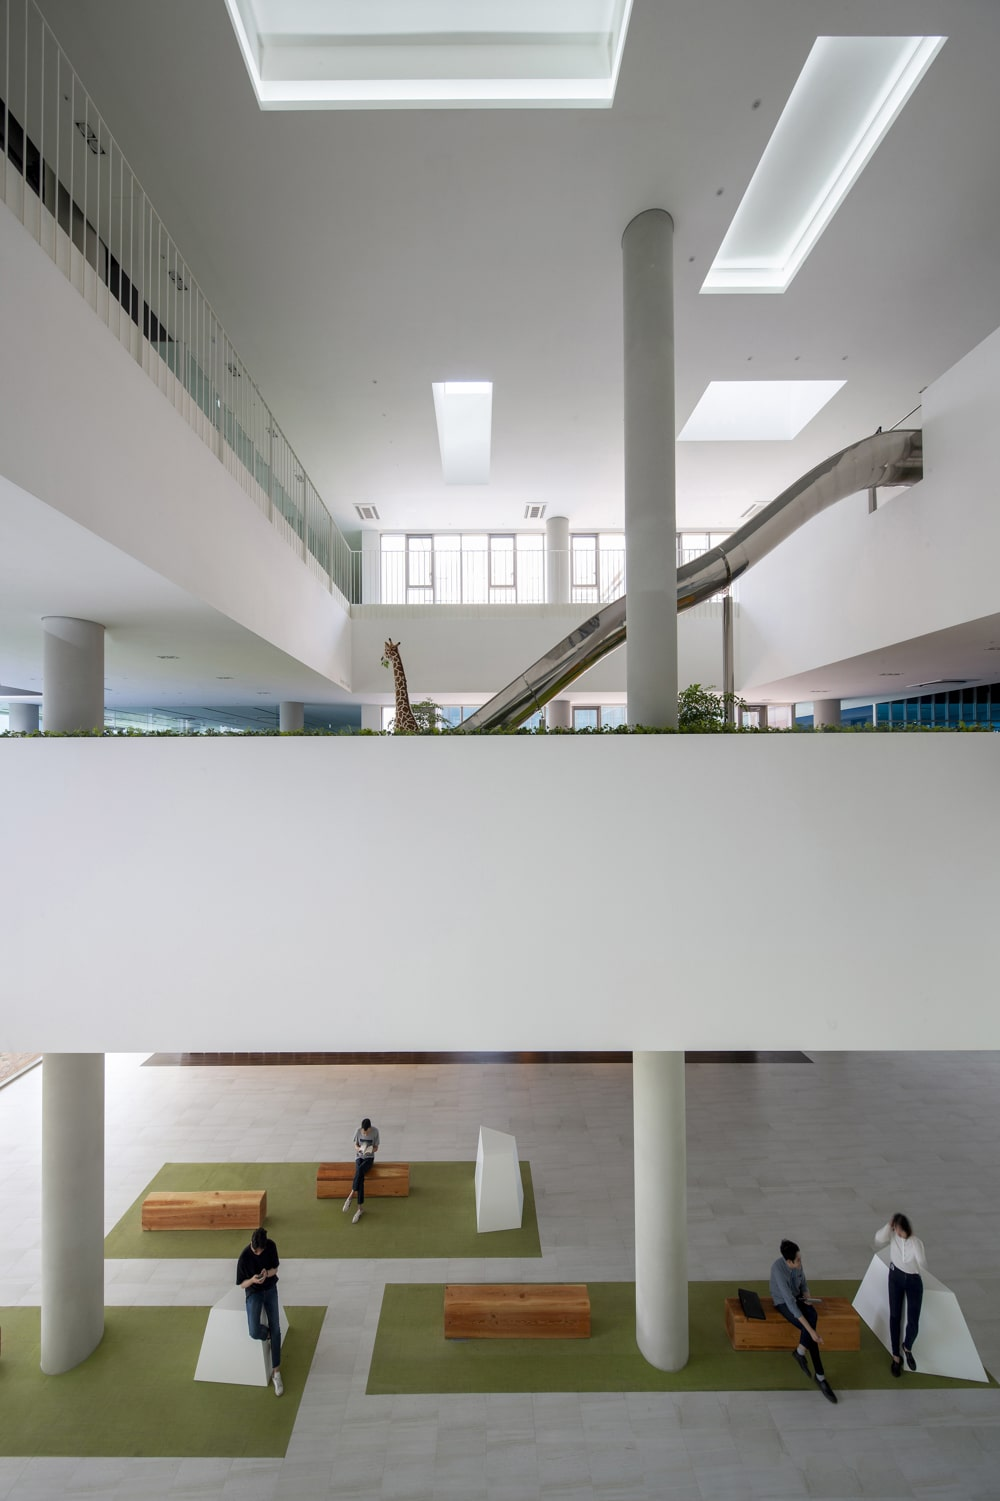 This is a look at the large interior of the building lobby with a tall ceiling that has skylights.